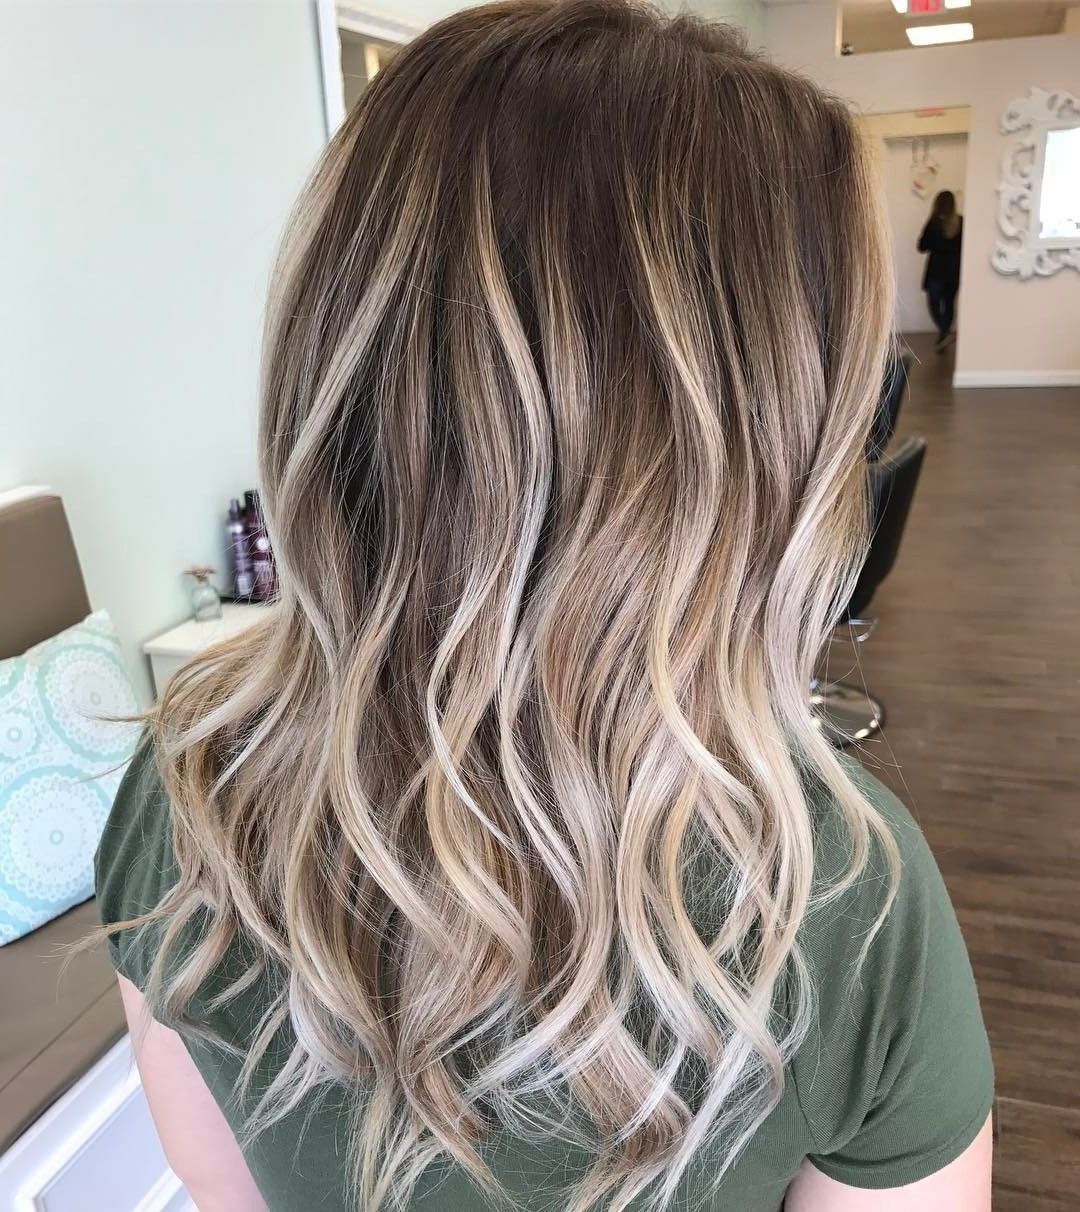 Sandy Blonde Hair Color As Of Neutral Hair Trends – Solbiatese Inside Well Known Straight Sandy Blonde Layers (Gallery 12 of 20)